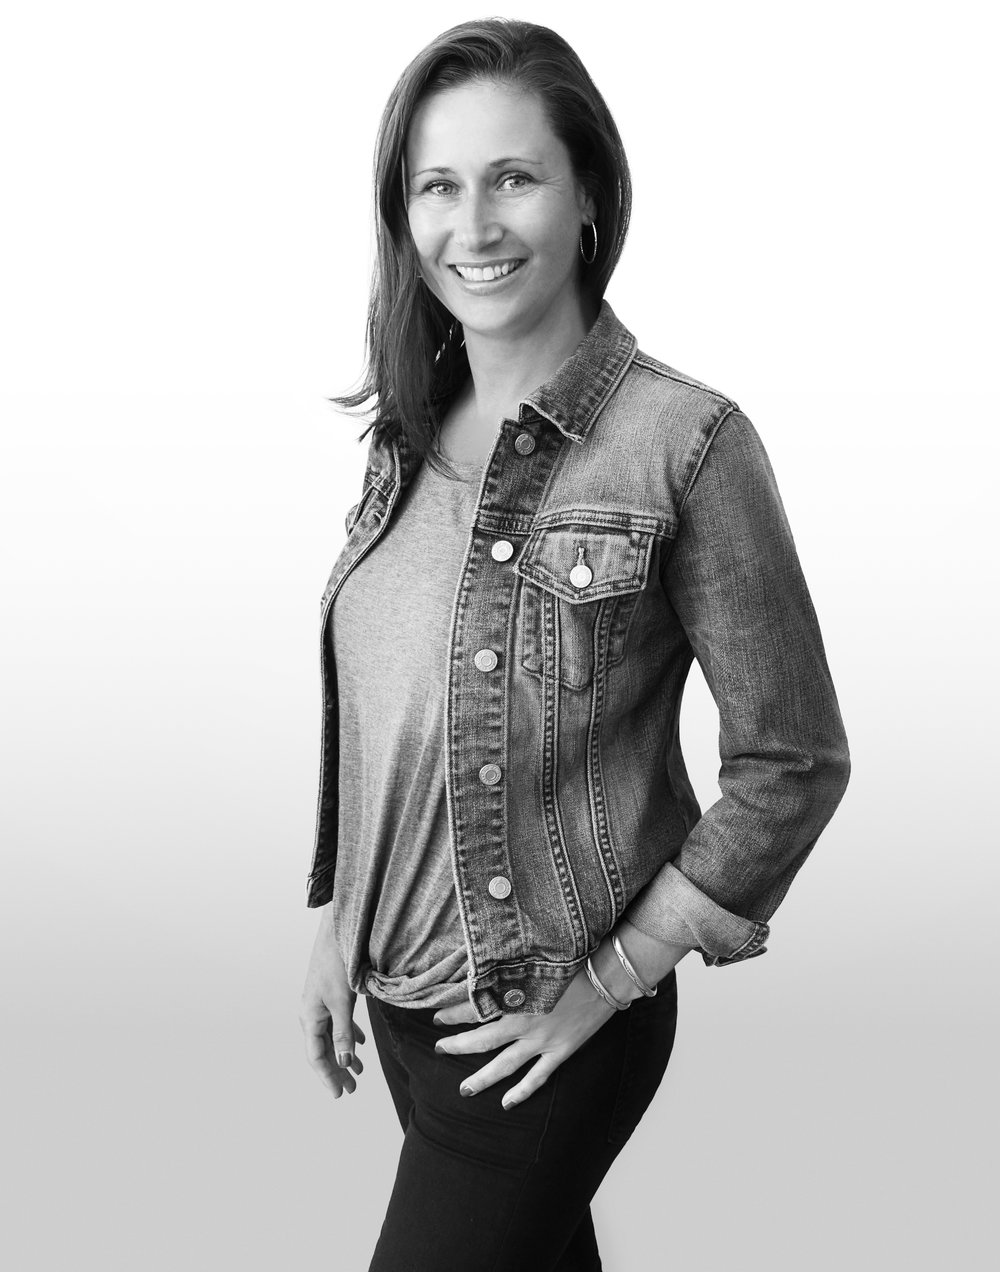 After graduating from San Jose State University with a design degree, Laura worked for transformative retail brands like Williams-Sonoma, Pottery Barn Kids, and West Elm. Her passion for beautiful, meaningful work made launching the Post Shop with Jayson an easy choice. She loves exploring the outdoors with her 18-year-old daughter and 3-year-old son, who keep her laughing—and busy—every day.